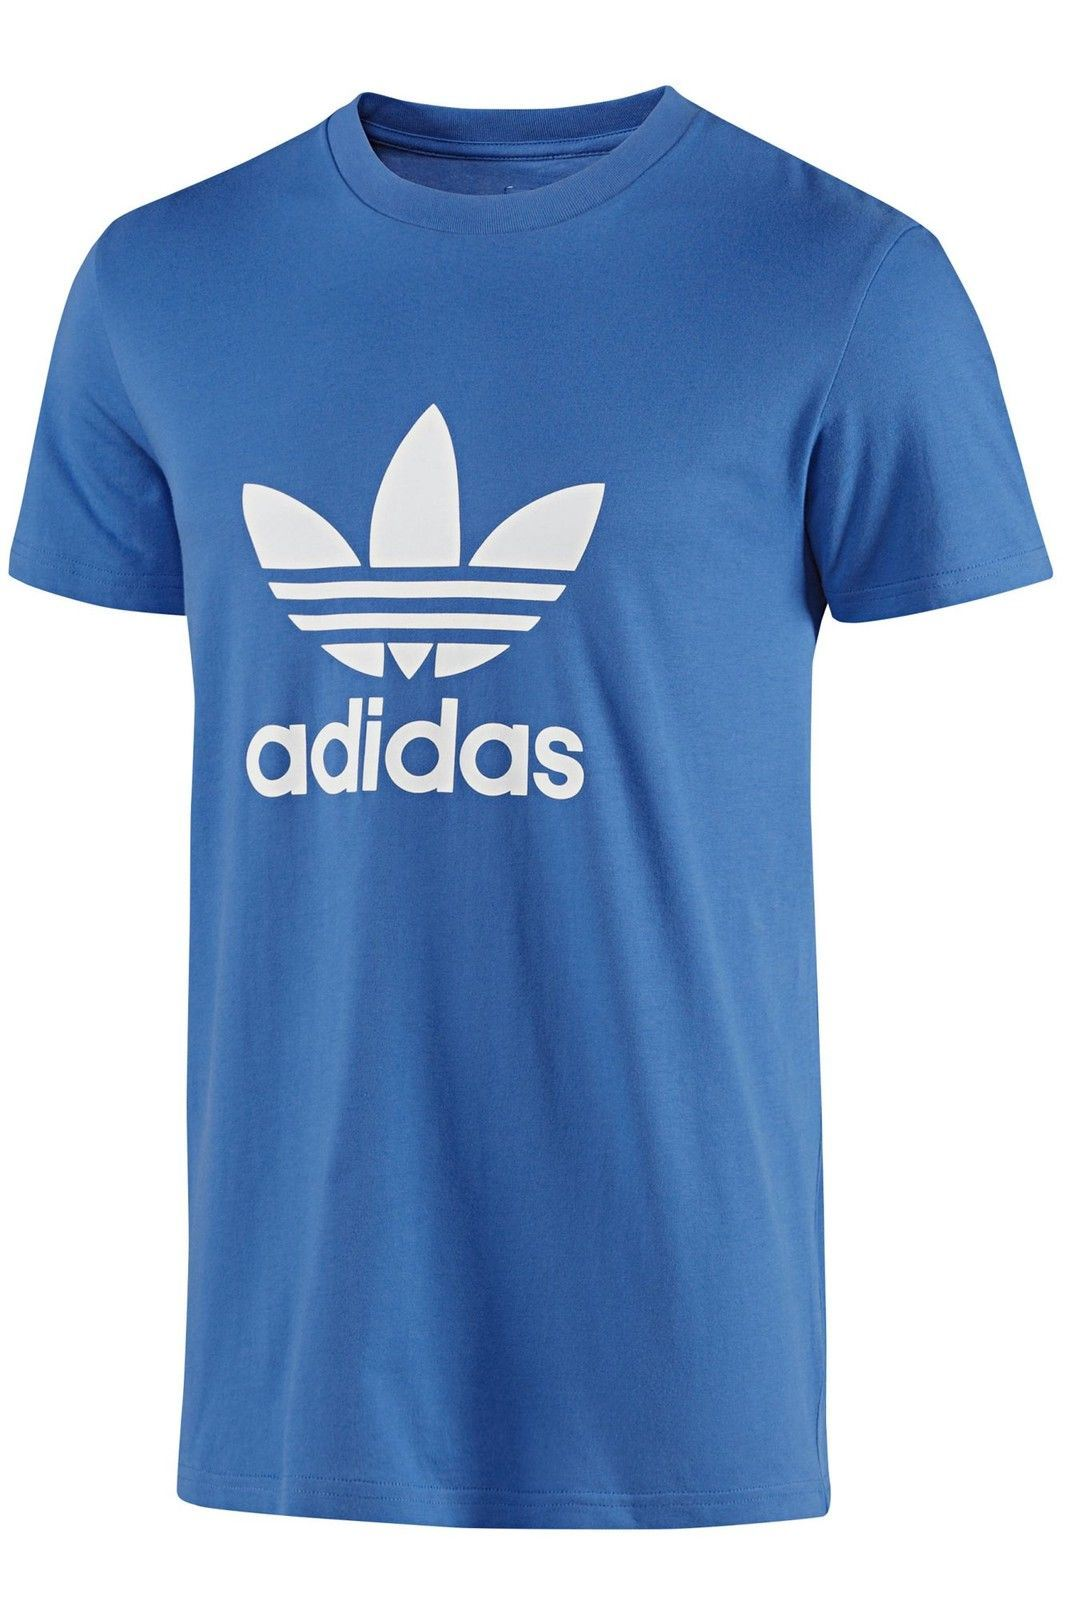 Adidas Originals Trefoil Tee Crew Neck Cotton Casual T-Shirt All Size S M L XL BLUE